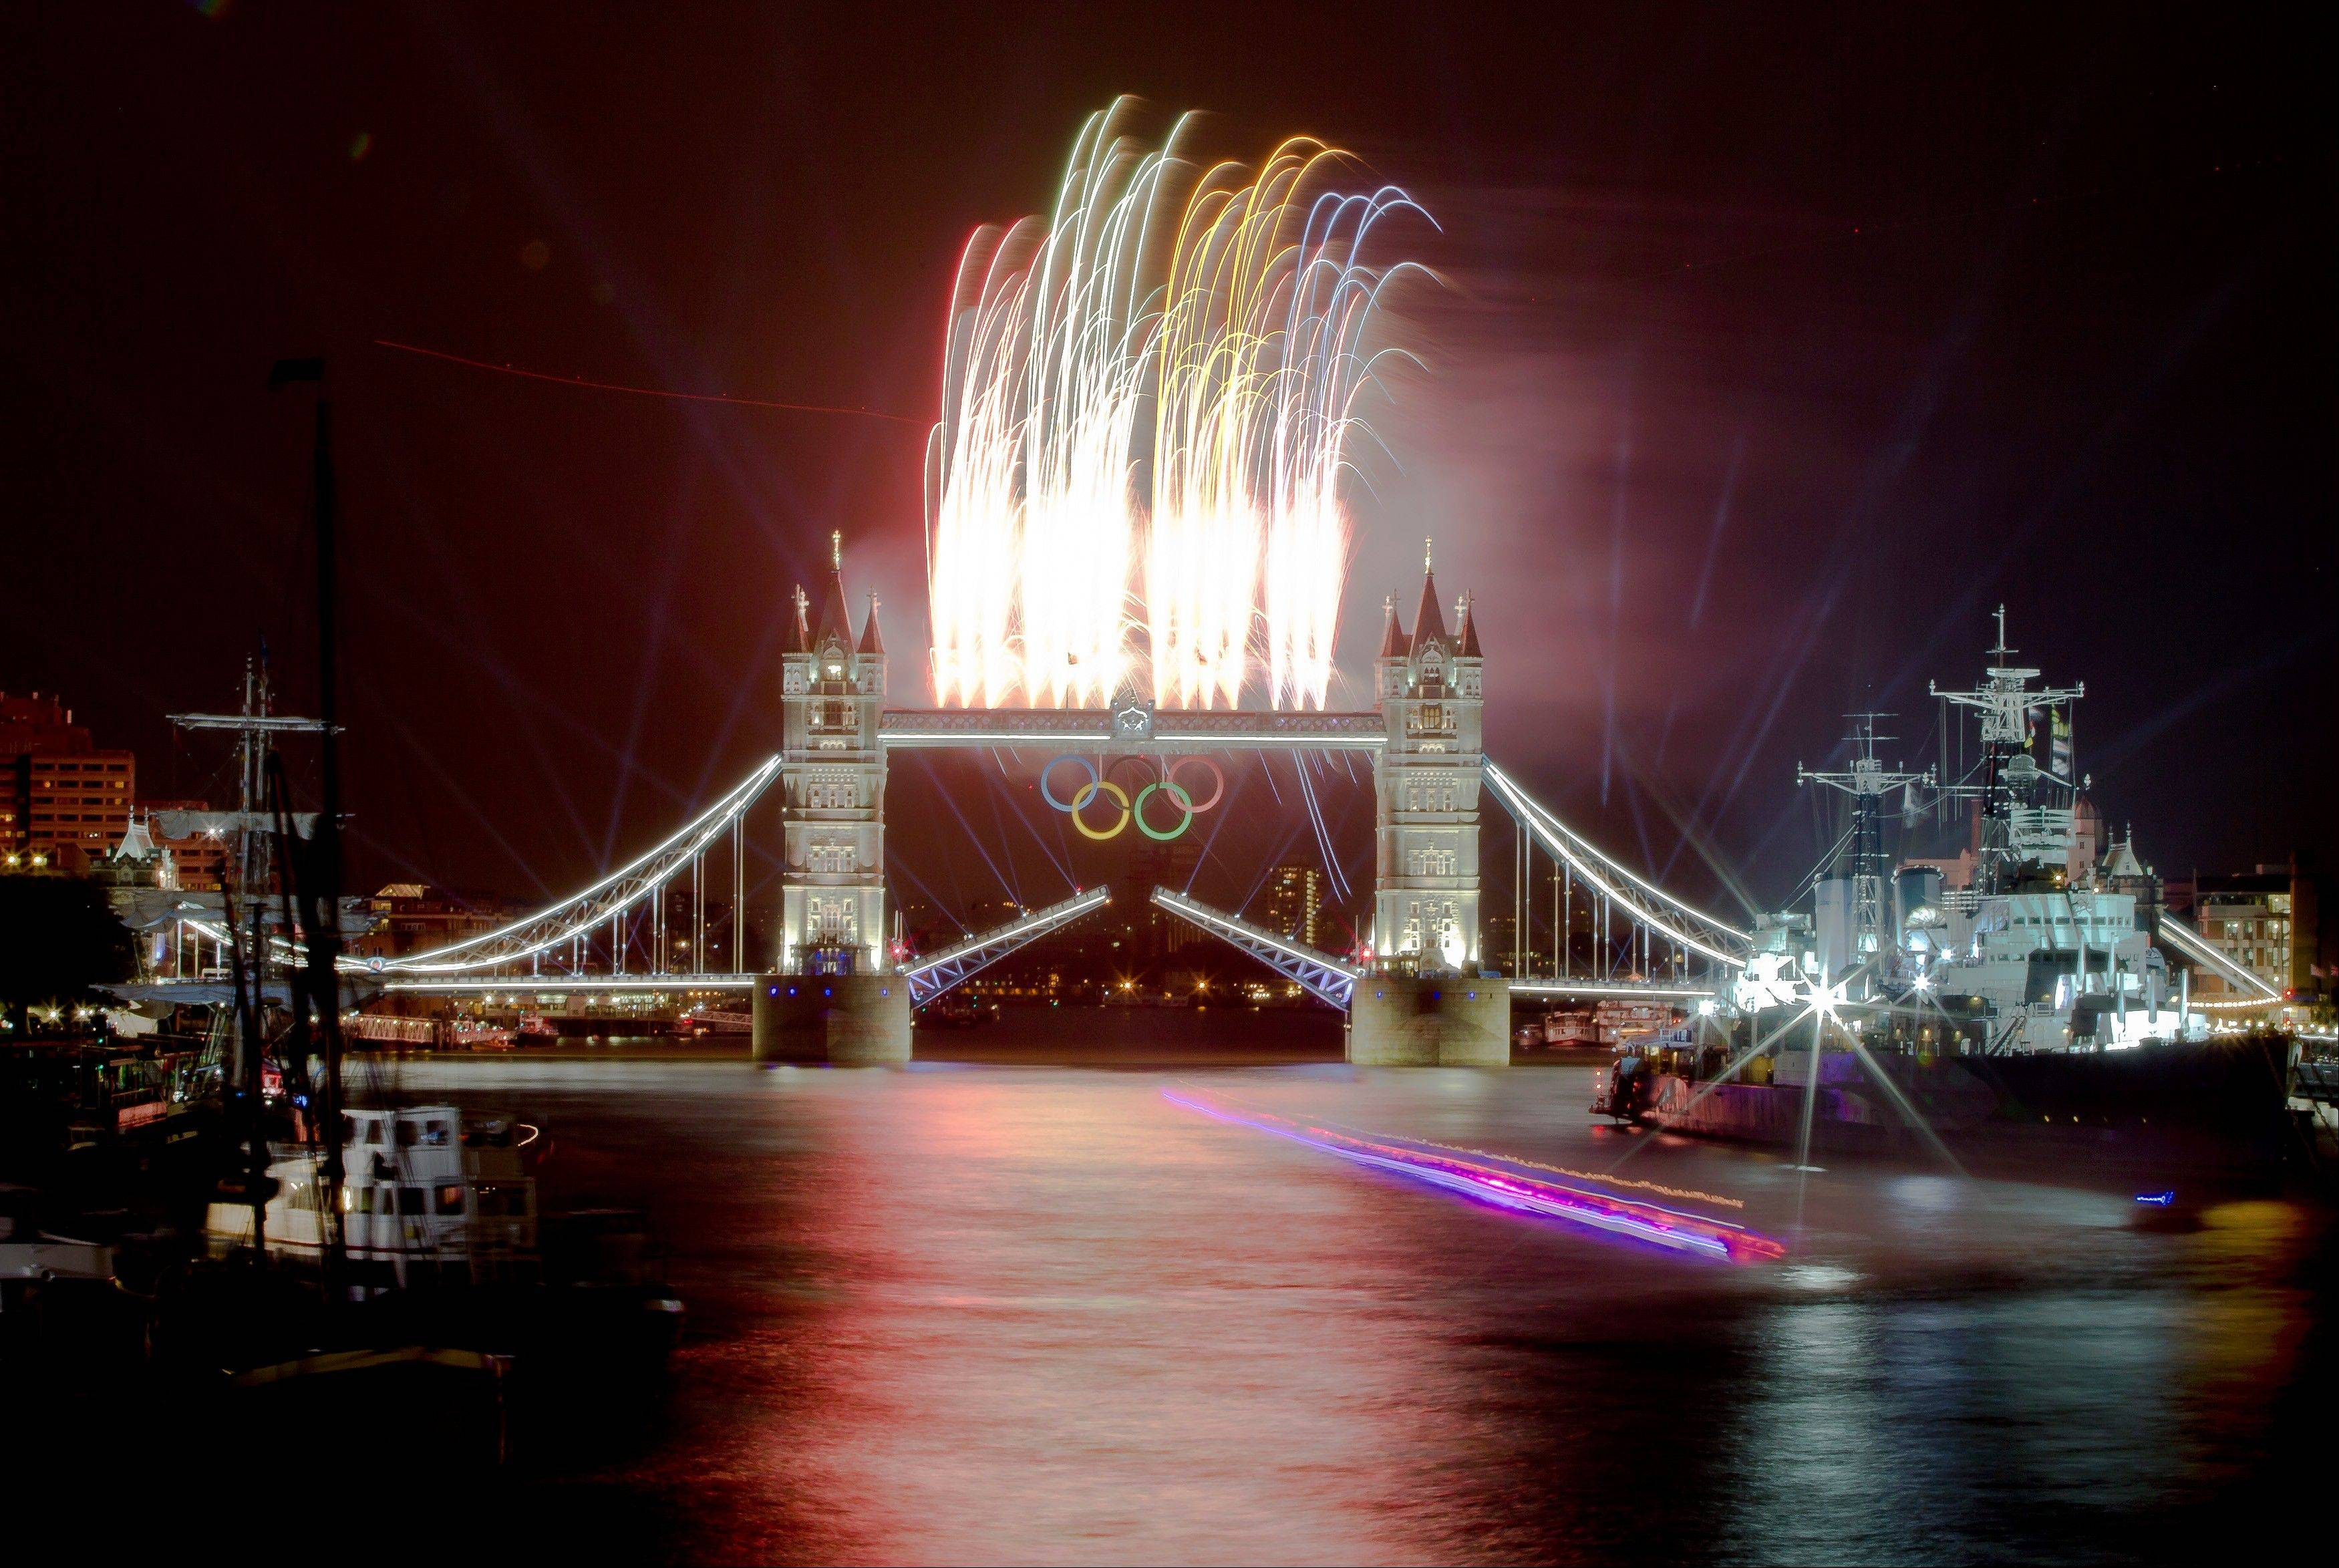 A speedboat carrying the Olympic Flame leaves a trail on this slow exposure photograph as fireworks explode above the iconic Tower Bridge over the River Thames in central London, decorated with Olympic rings, during the Opening Ceremony at the 2012 Summer Olympics, Friday, July 27, 2012, in London.